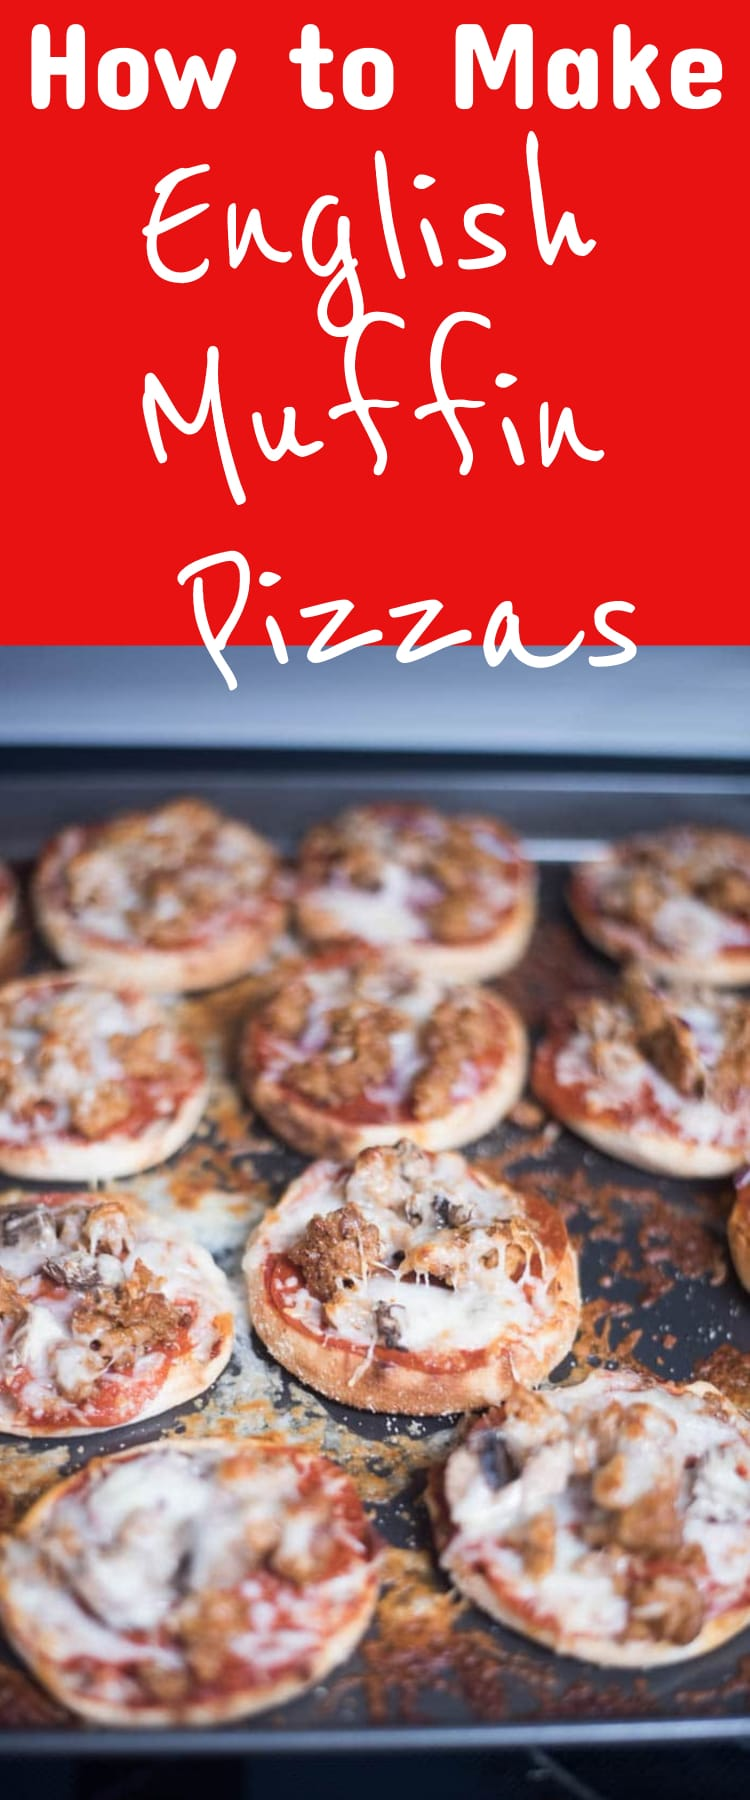 English Muffin Pizzas / HOw to Make English Muffin pizzas / Mini Pizzas / #pizza #homemadepizza via @clarkscondensed